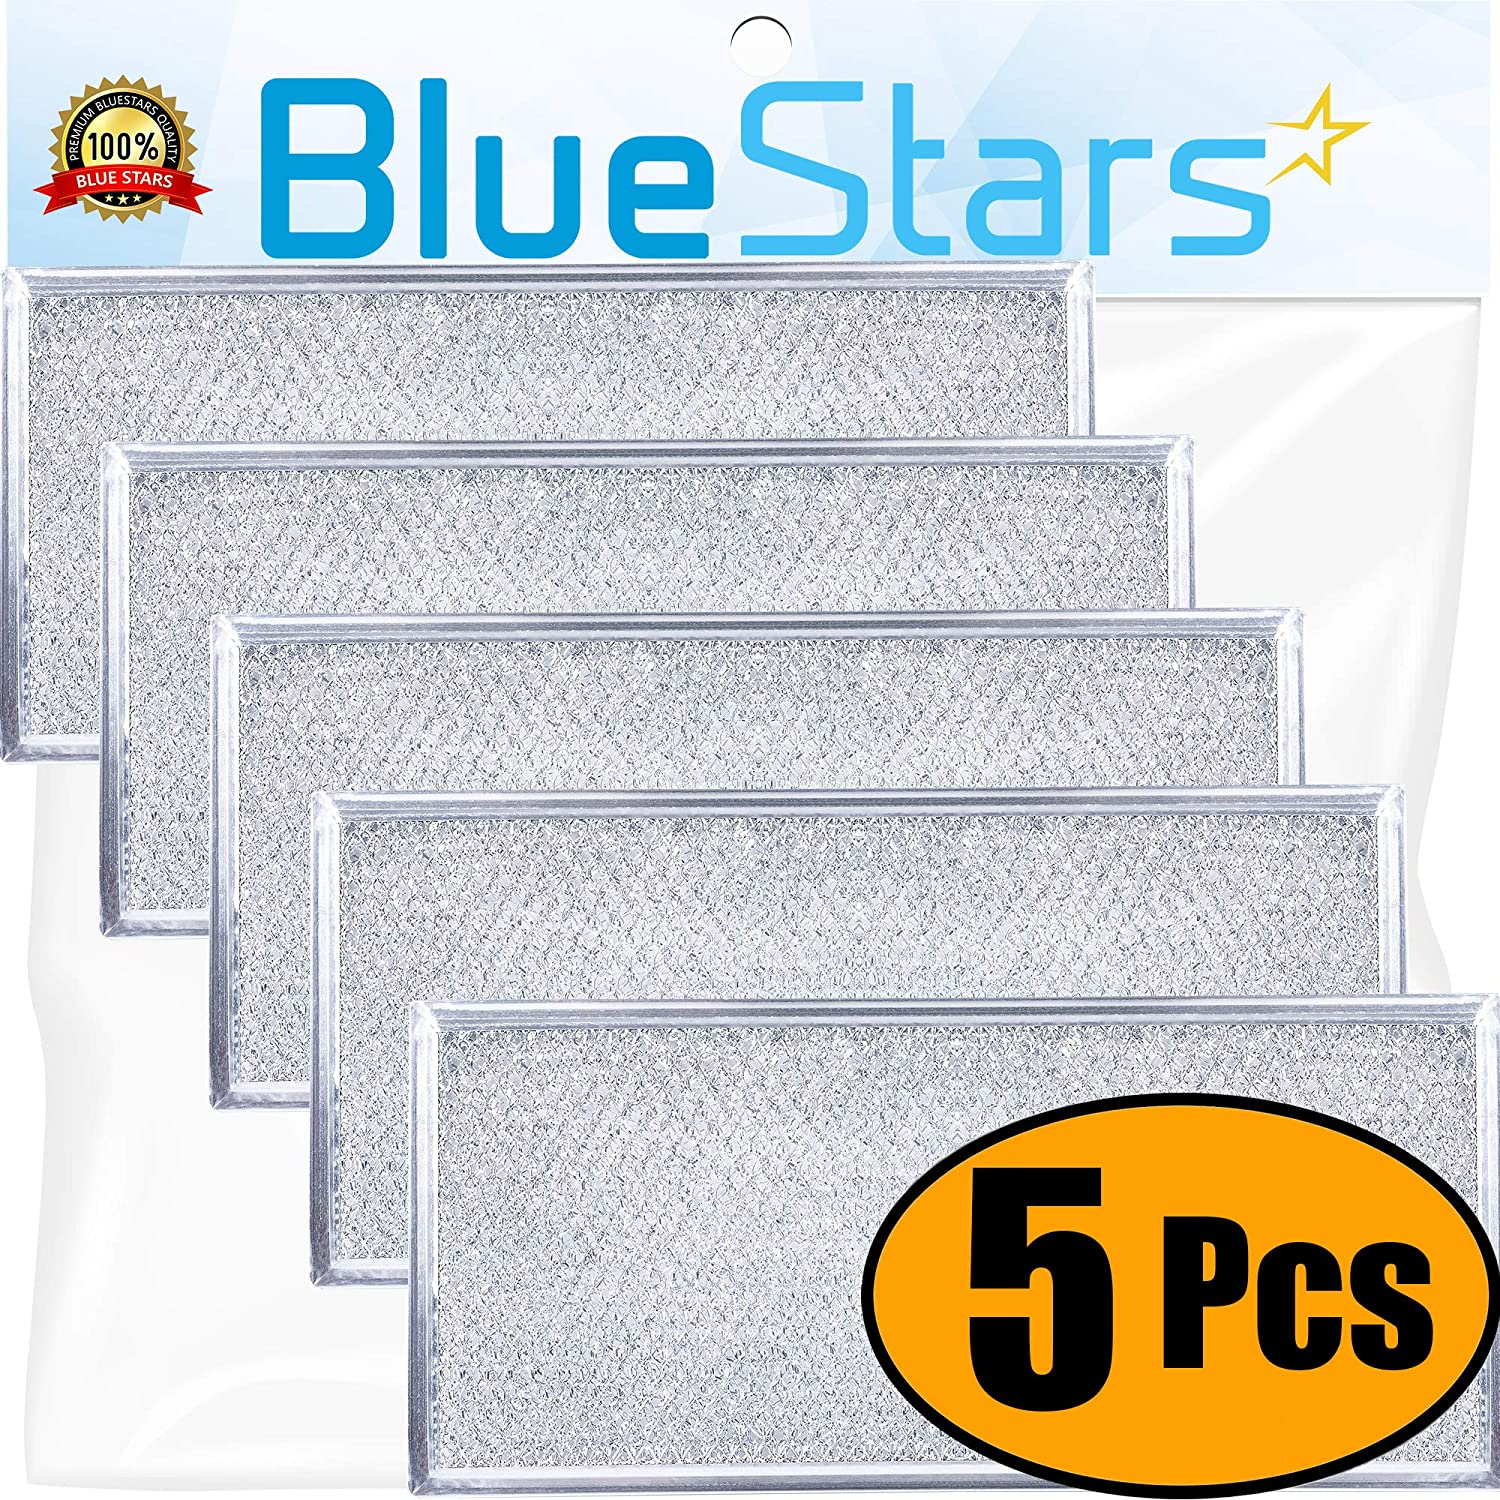 "Ultra Durable W10208631A Filter Aluminum Mesh Microwave Grease Filter Approx. 13"" x 6"" by Blue Stars - Exact Fit for Whirlpool & Maytag Microwaves - Replaces AP5617368, W10208631 - Pack Of 5"